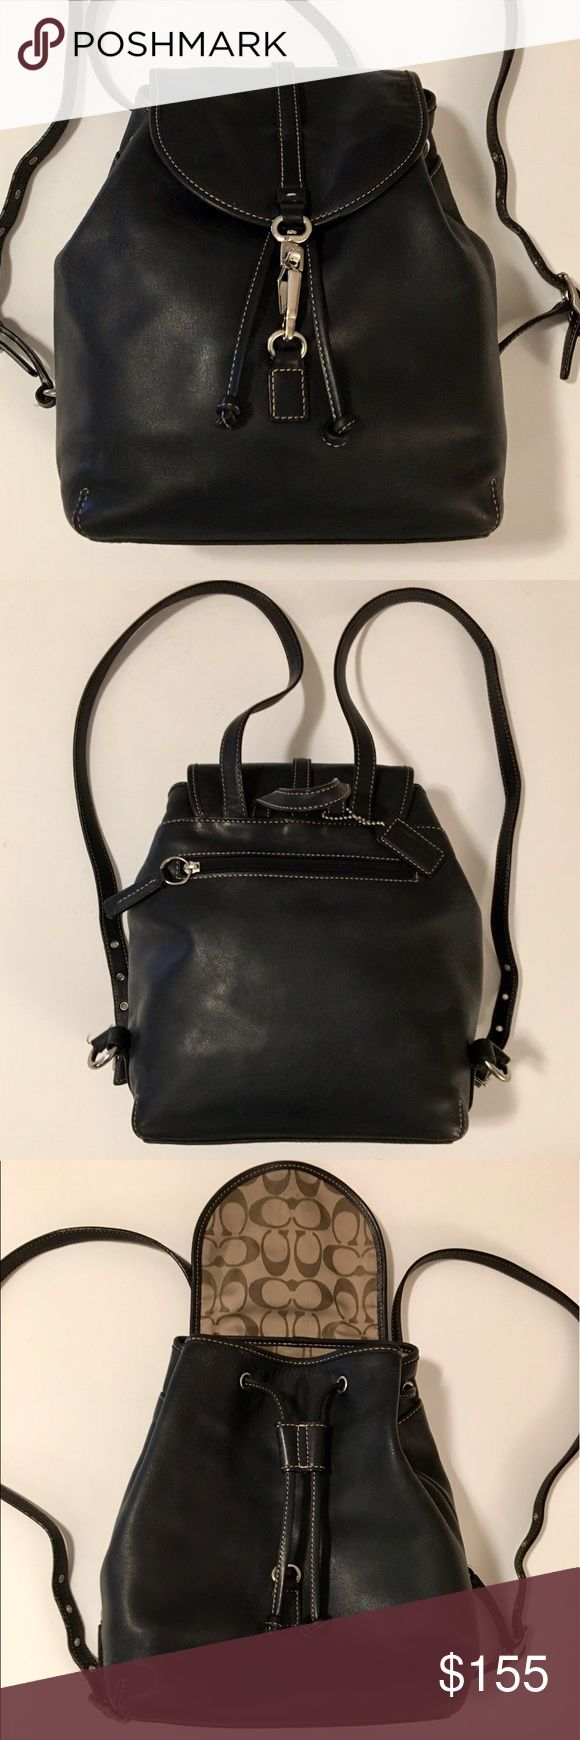 "Coach Studio Legacy Backpack in Black Leather Beautiful soft black leather. Has interior zipper pocket along with two pockets. Draw string and Silver clasp hardware. One outer zipper pocket. Approx. Size: 10"" L X 11"" H X 4.75"" D, Double backpack straps are fully adjustable (5 prong) with 18""- 24"" drop, Center top leather handle to hang backpack or carry by hand. Coach Bags Backpacks"